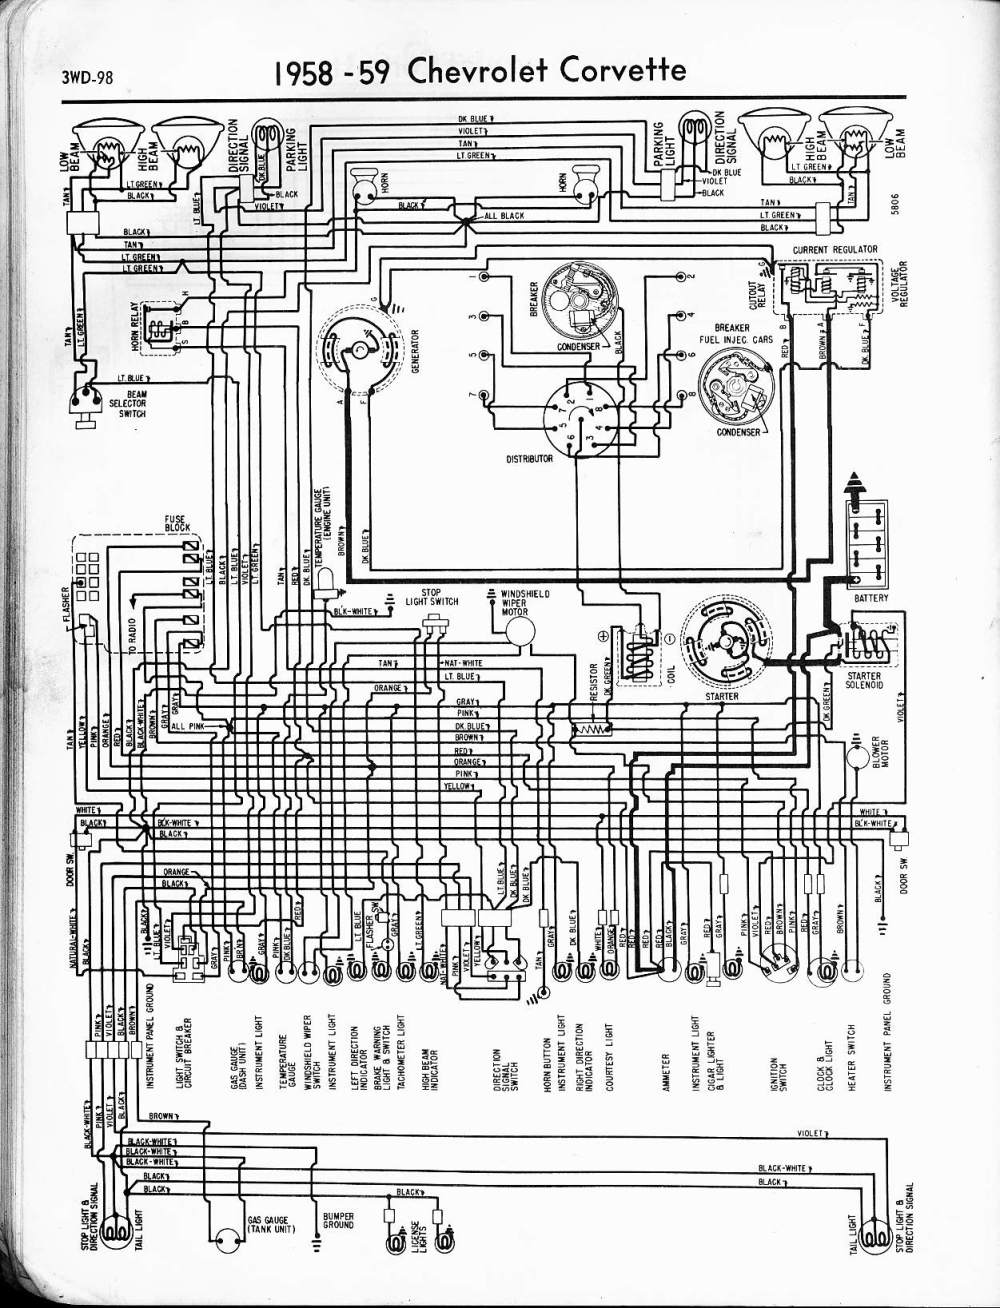 medium resolution of 1958 apache wiring diagram wiring diagrams farmall wiring diagram 1958 apache wiring diagram